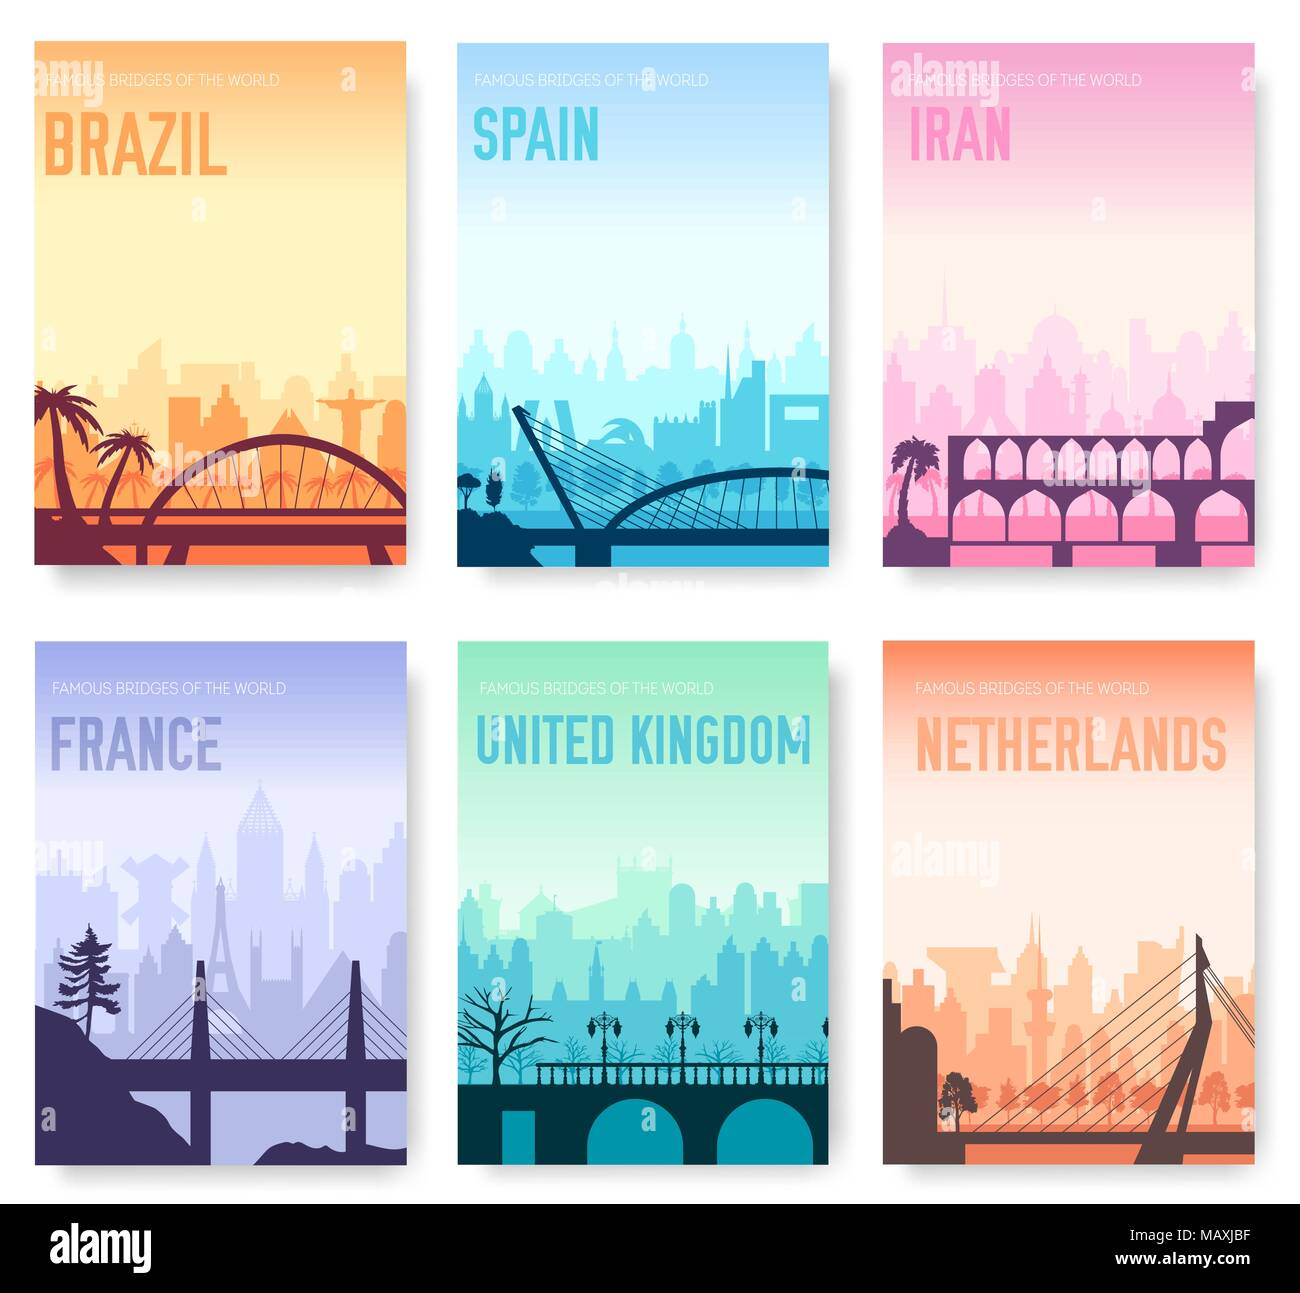 travel brochure spain stock vector images alamy